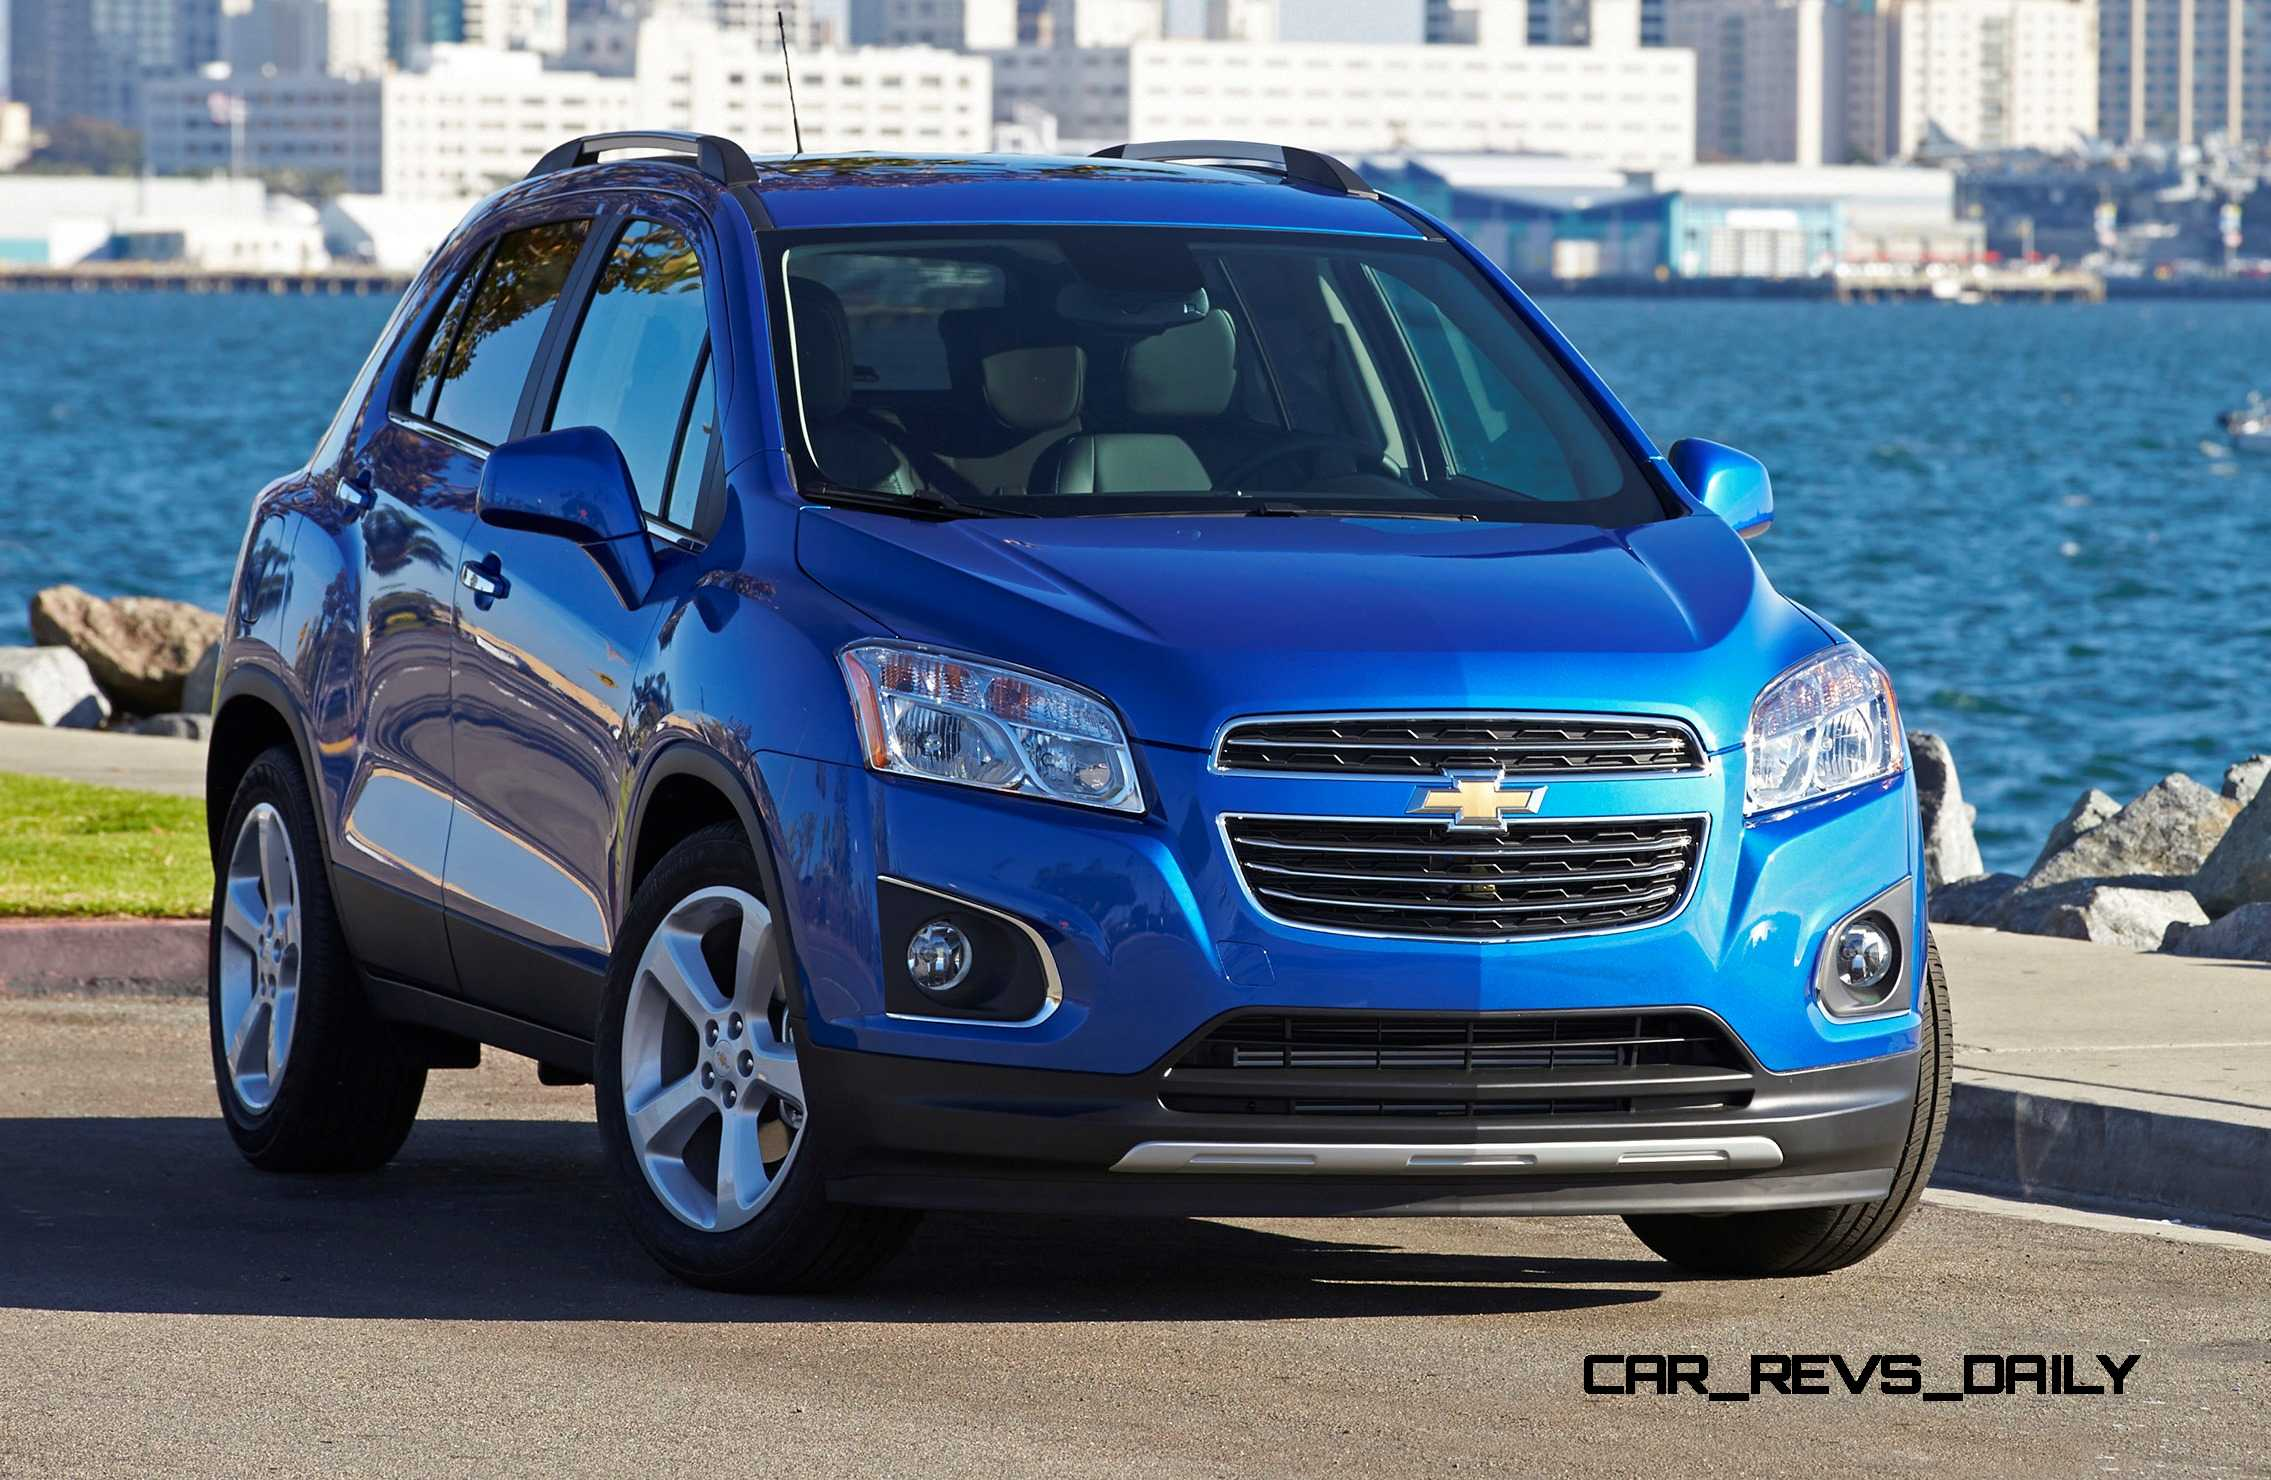 2015 chevrolet trax usa arrival in september to battle juke honda hr v and jeep renegade mini suvs. Black Bedroom Furniture Sets. Home Design Ideas